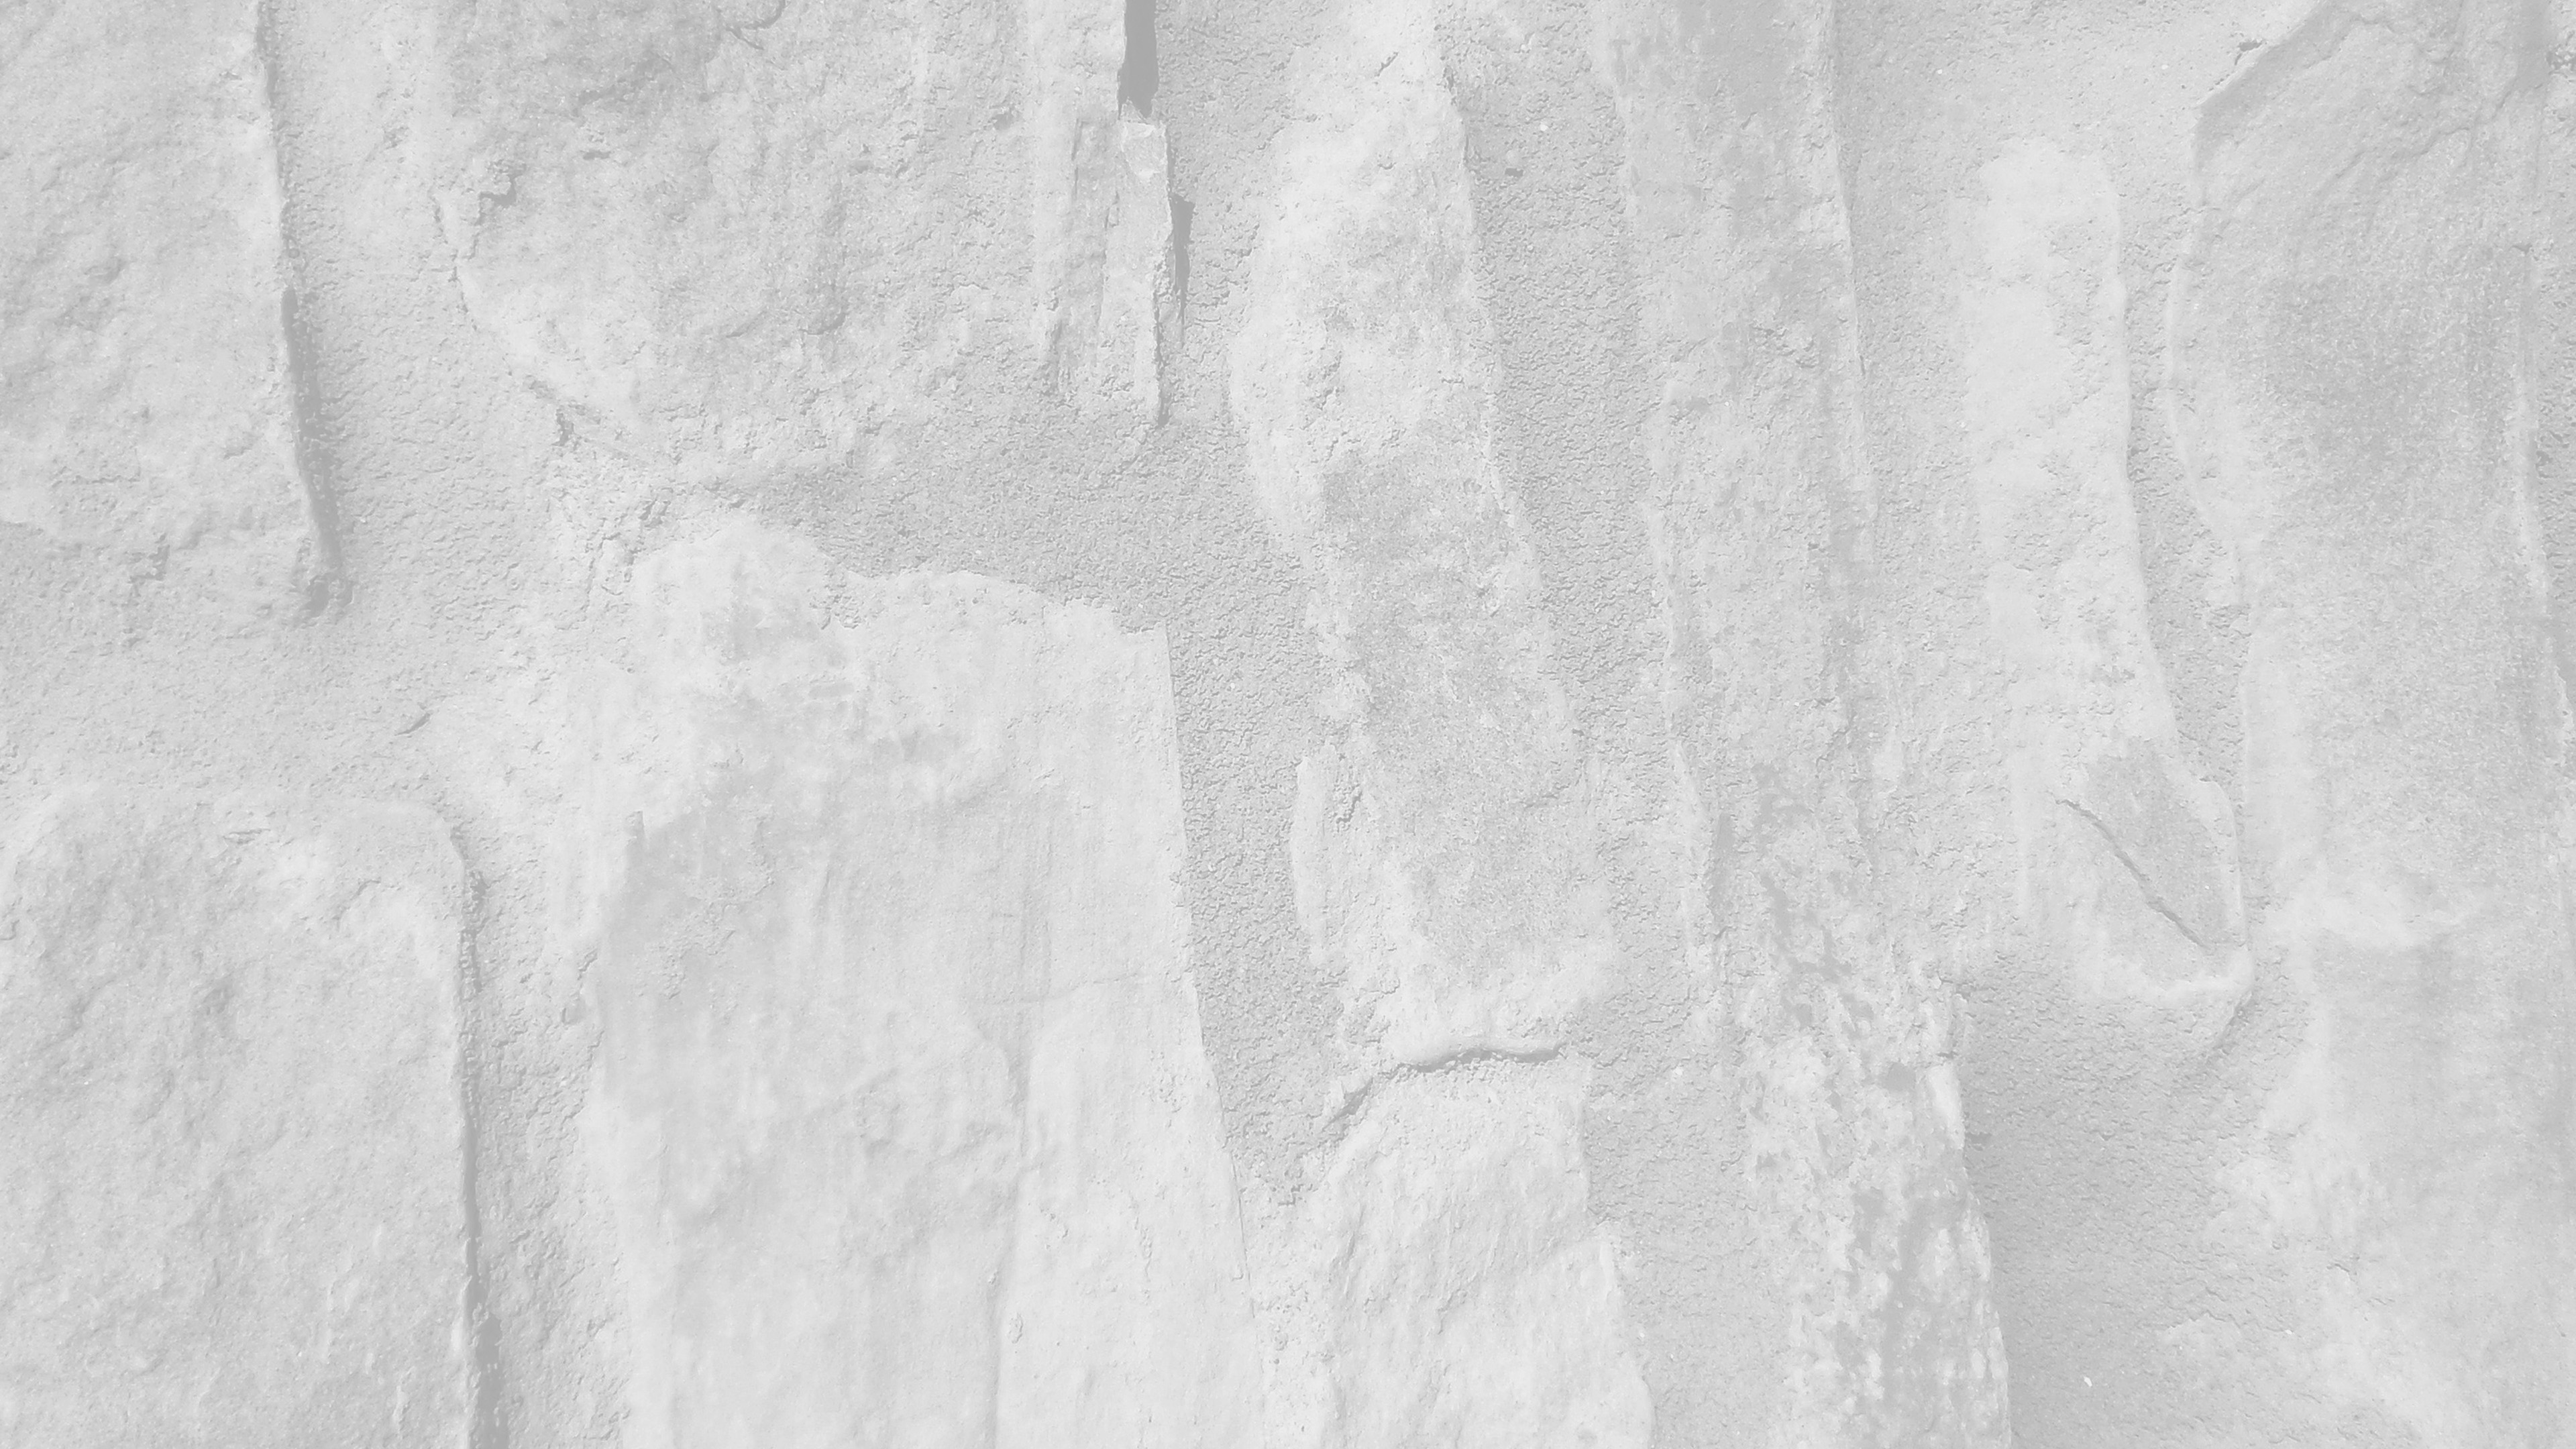 Vj43 Brick Wall Texture Pattern White Bw Papers Co